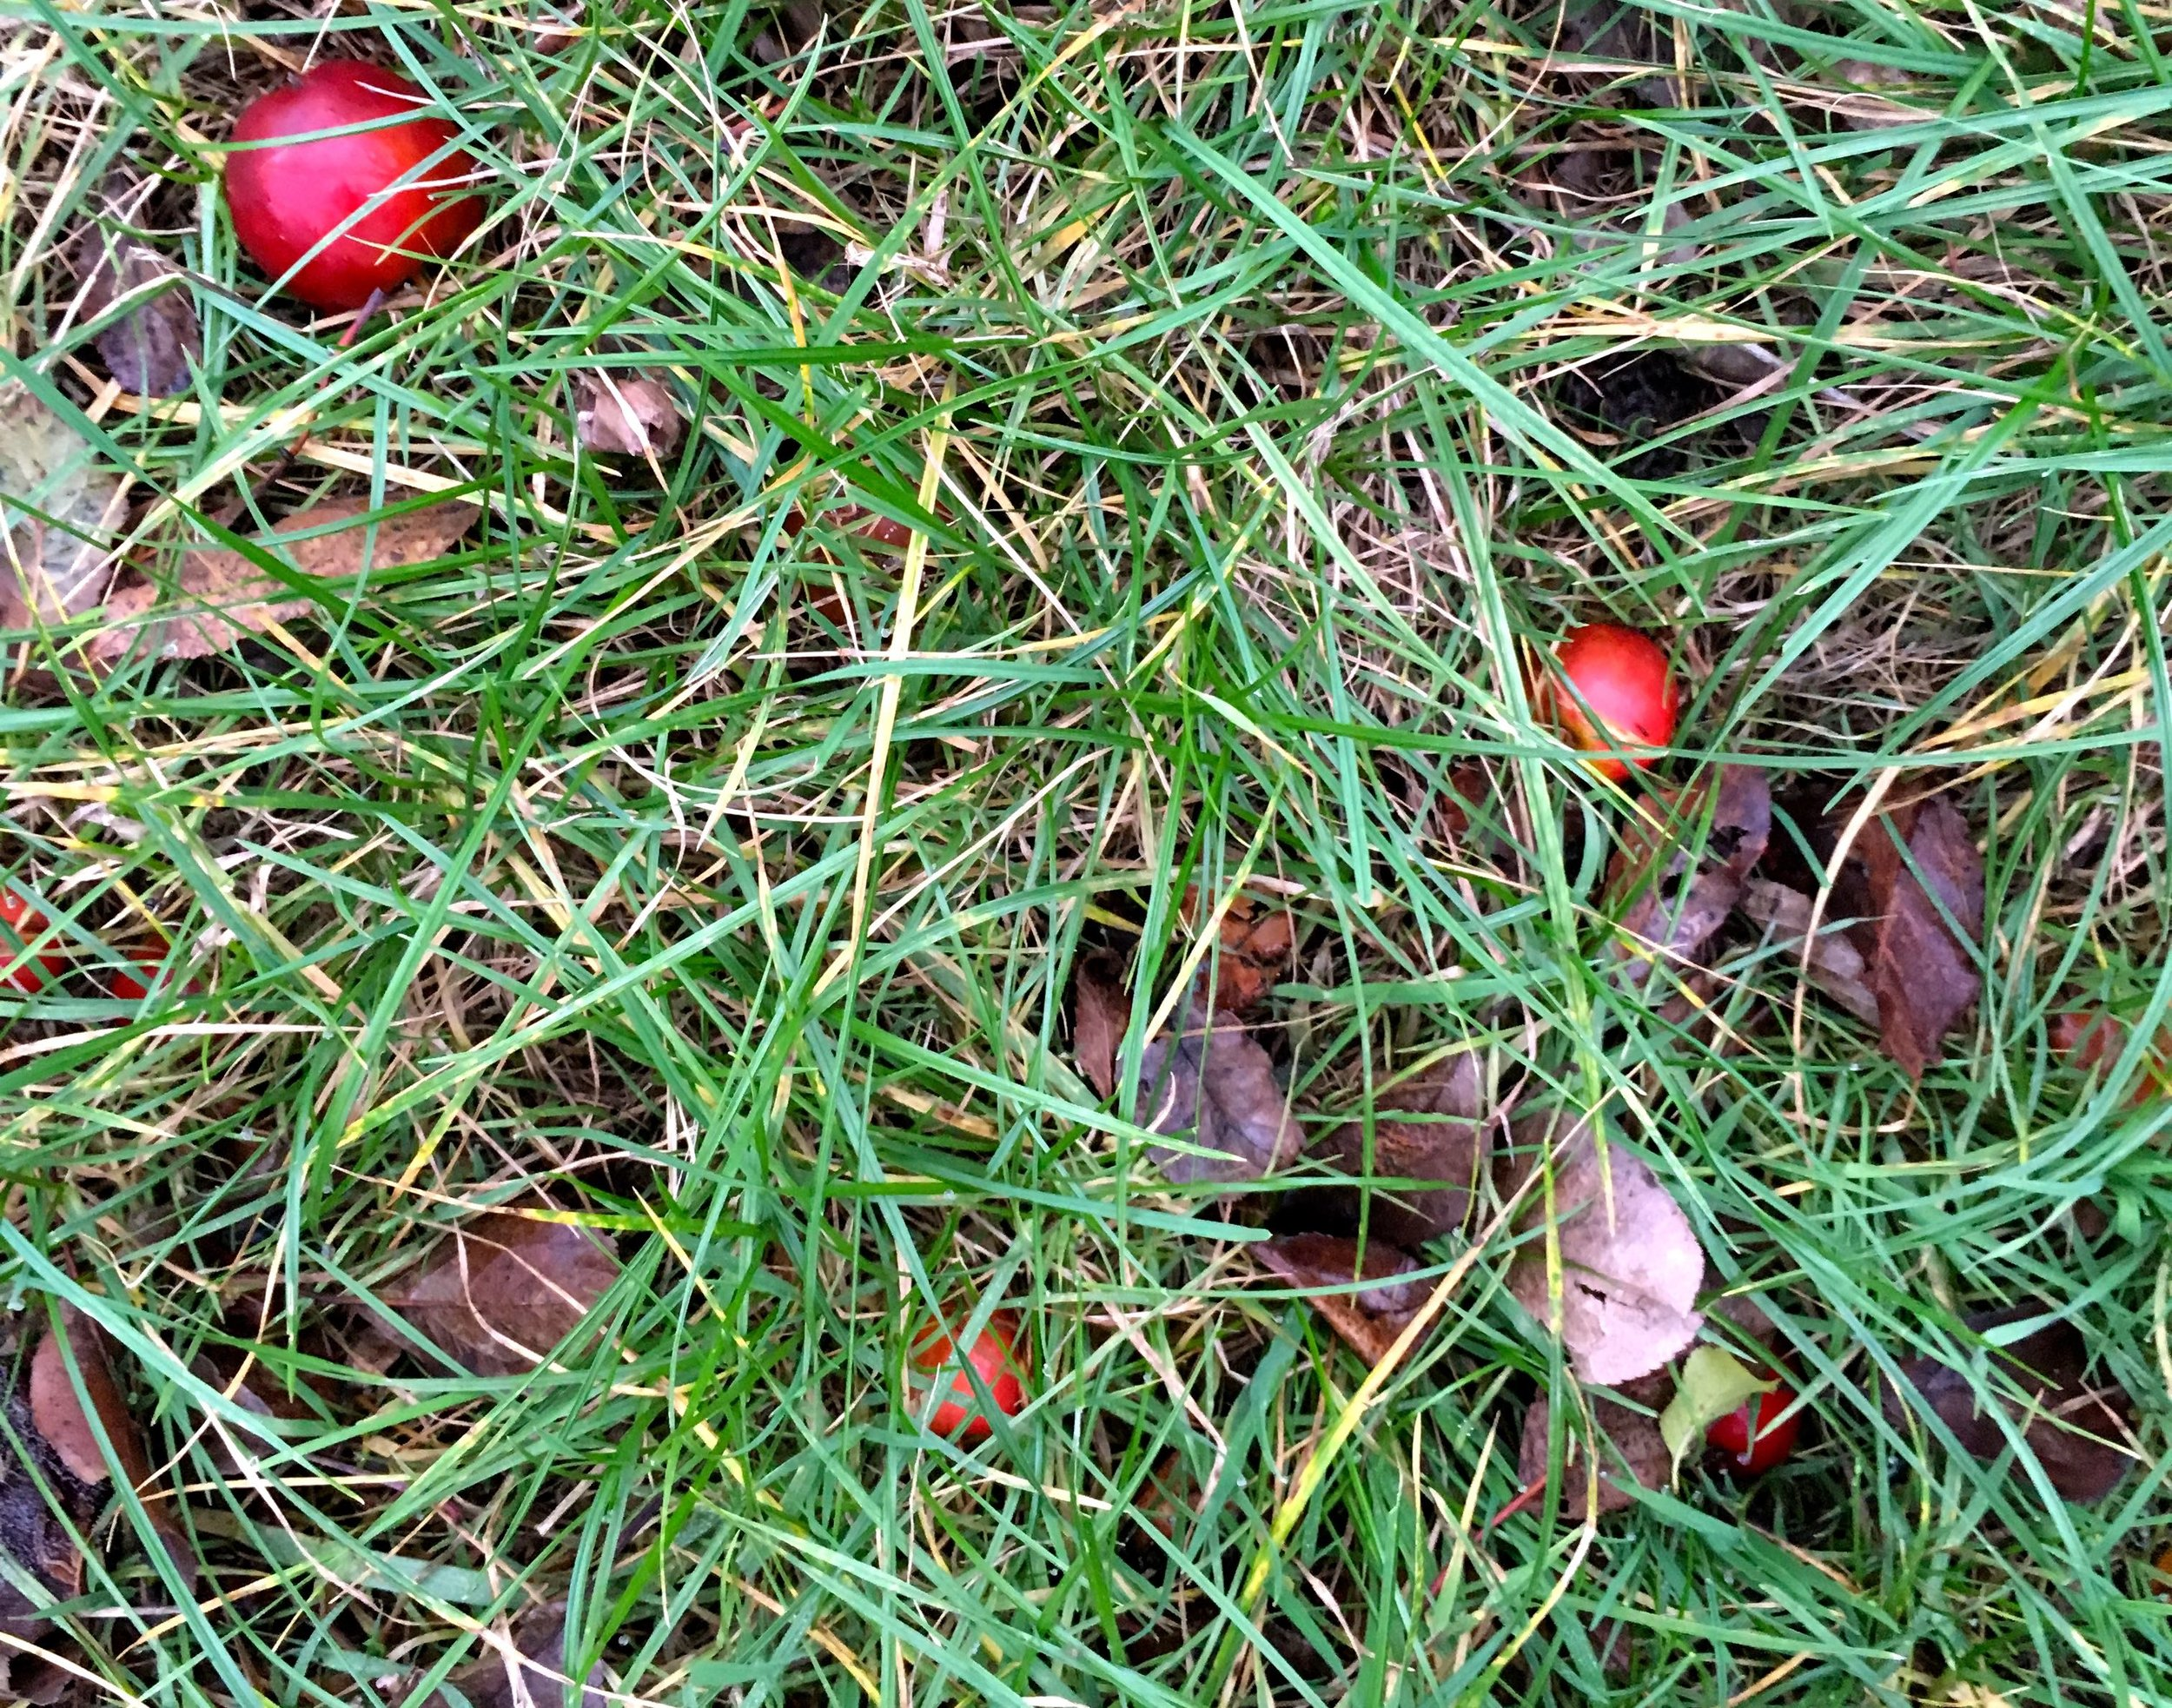 crab apples down! Under the tree the ground is littered with fallen crab apples